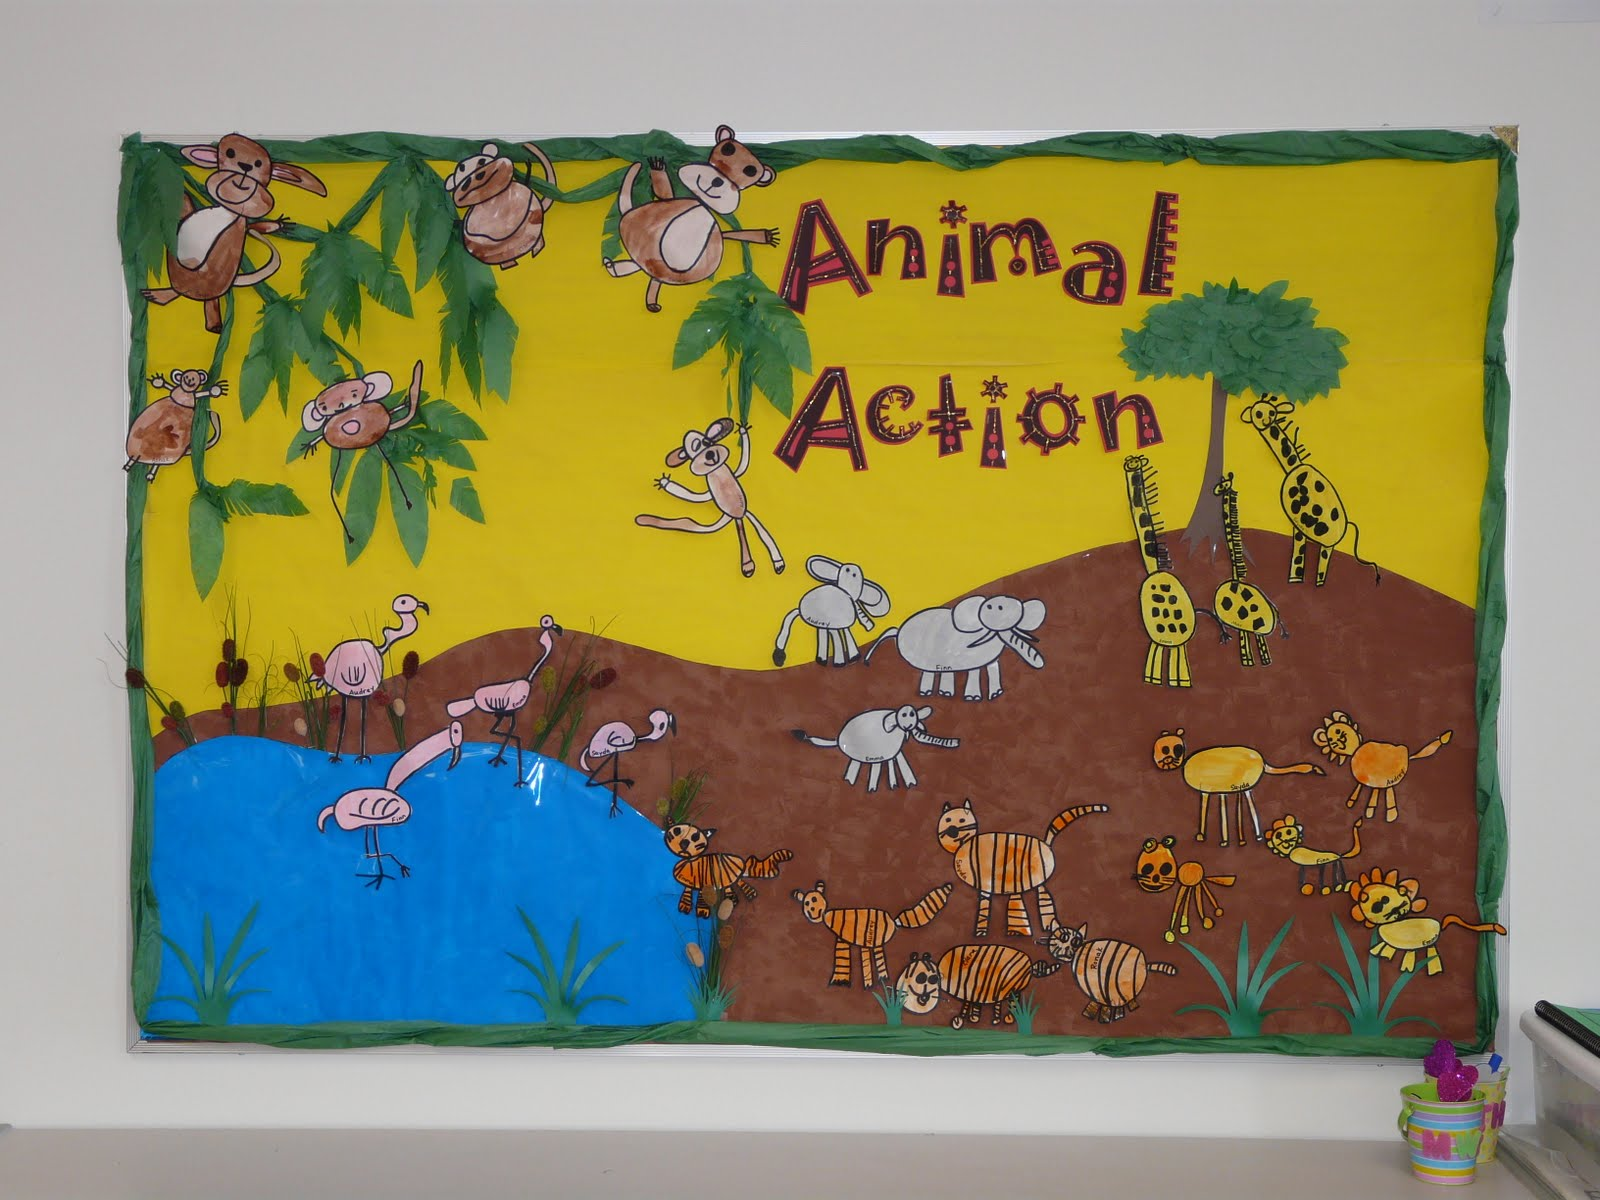 October Bulletin Board Ideas Preschool http://bulletinboardideas.blogspot.com/2009/11/animal-action.html